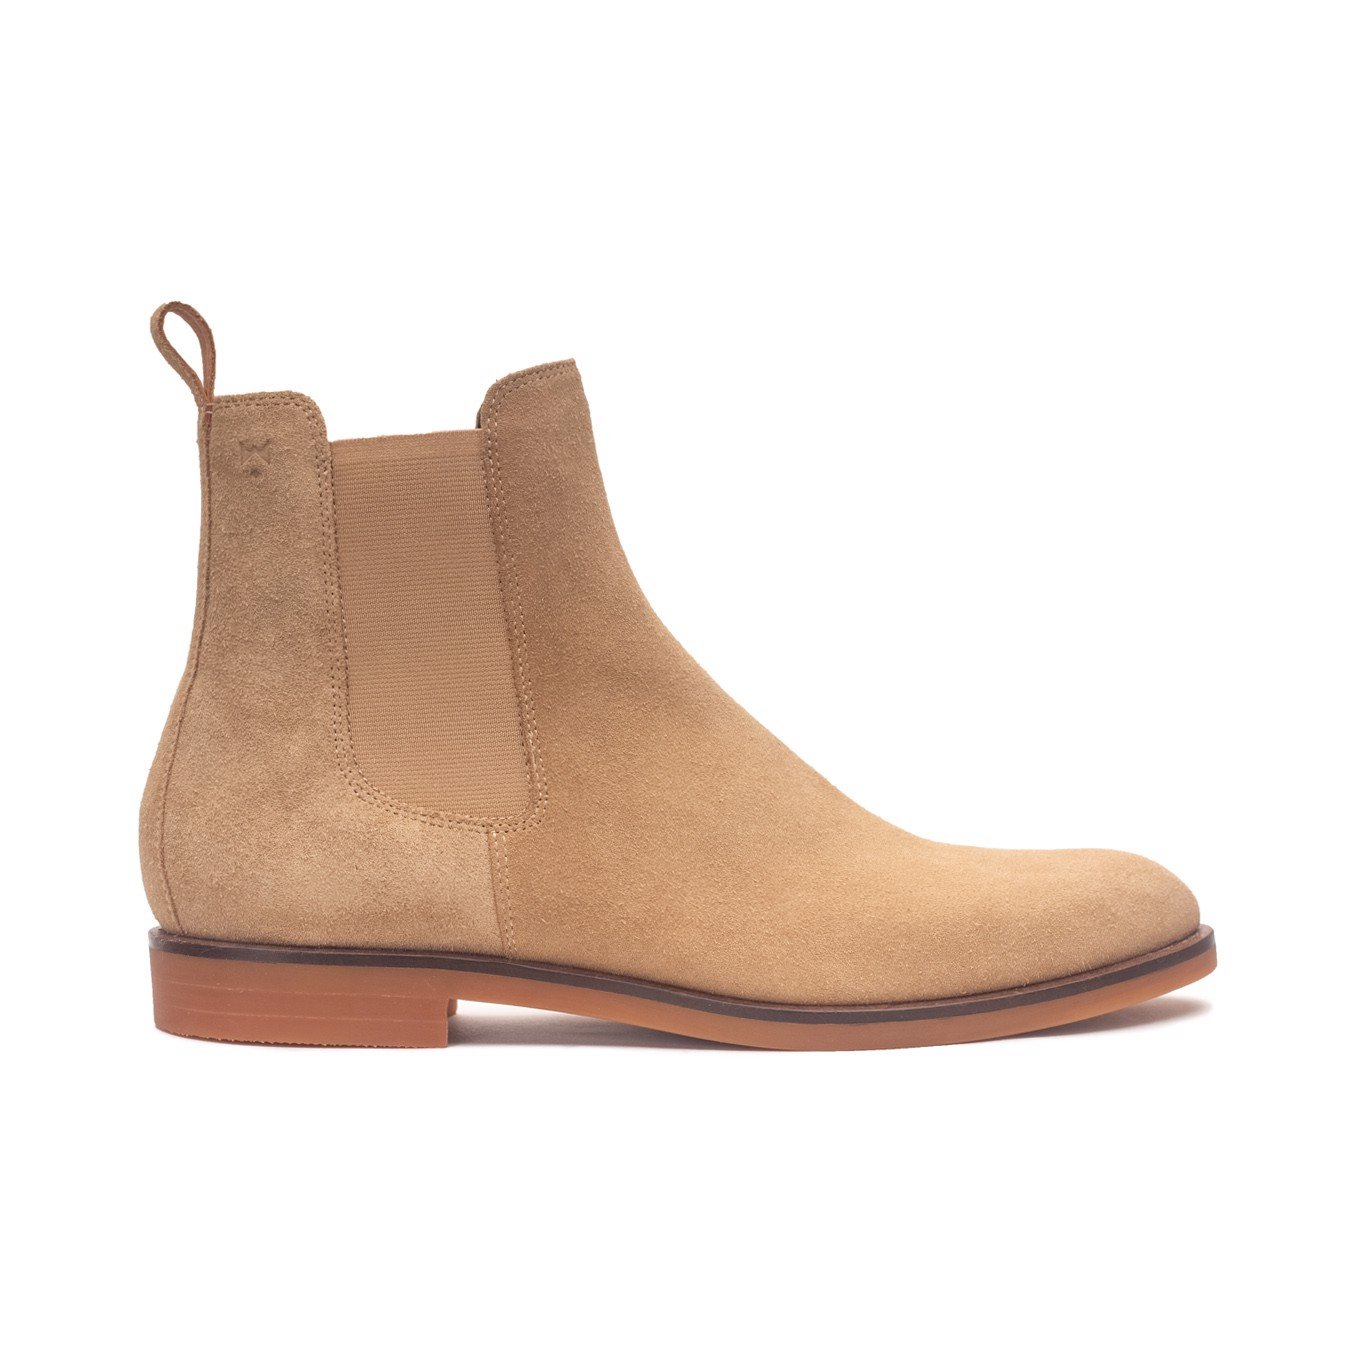 THE CLASSIC GUM CHELSEA BOOT - TAN